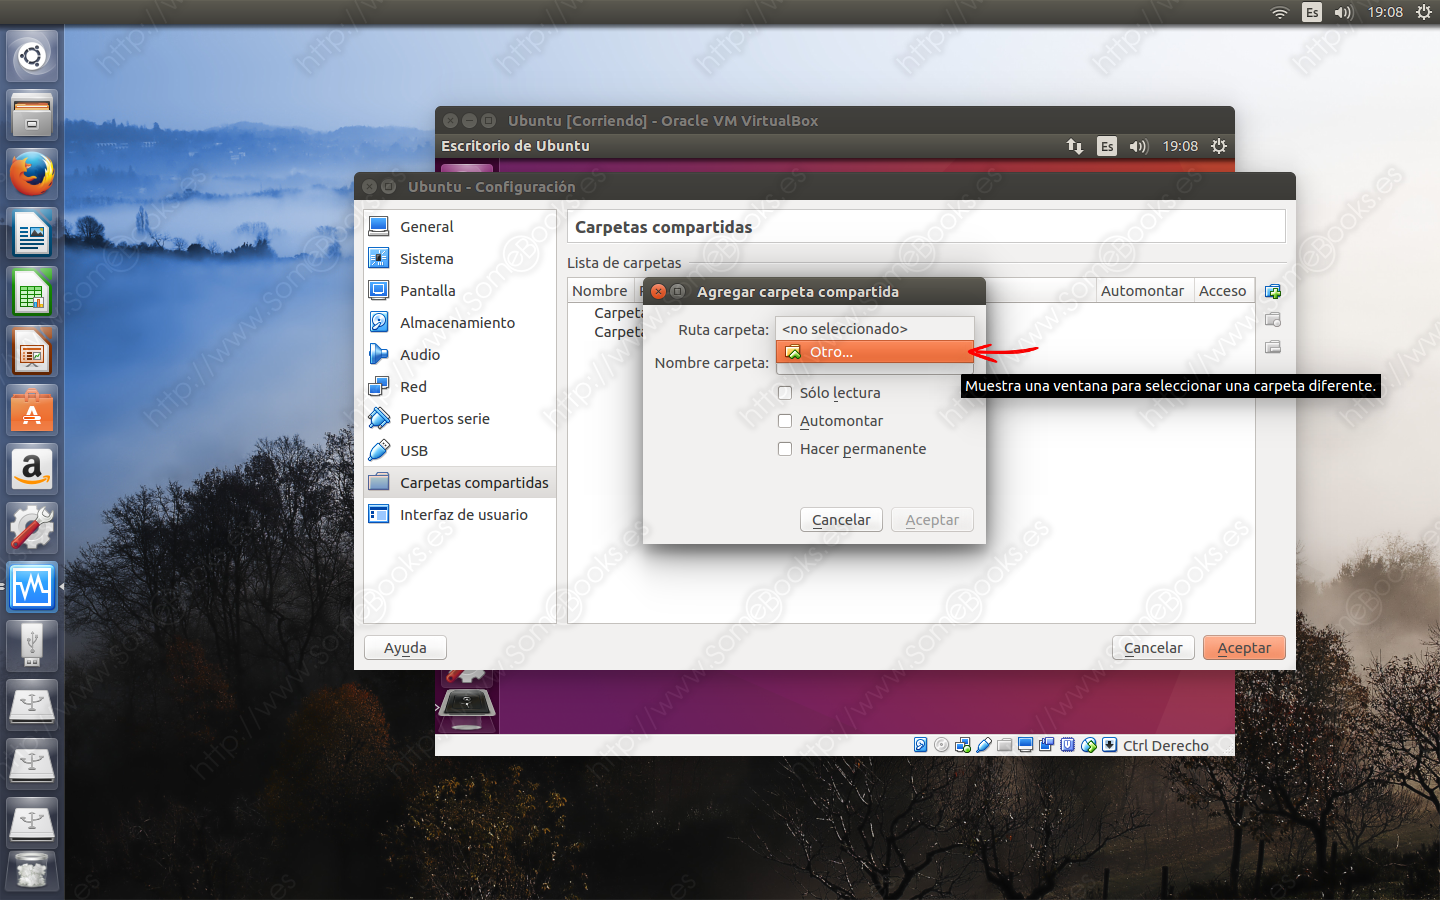 carpetas-compartidas-de-virtualbox-004